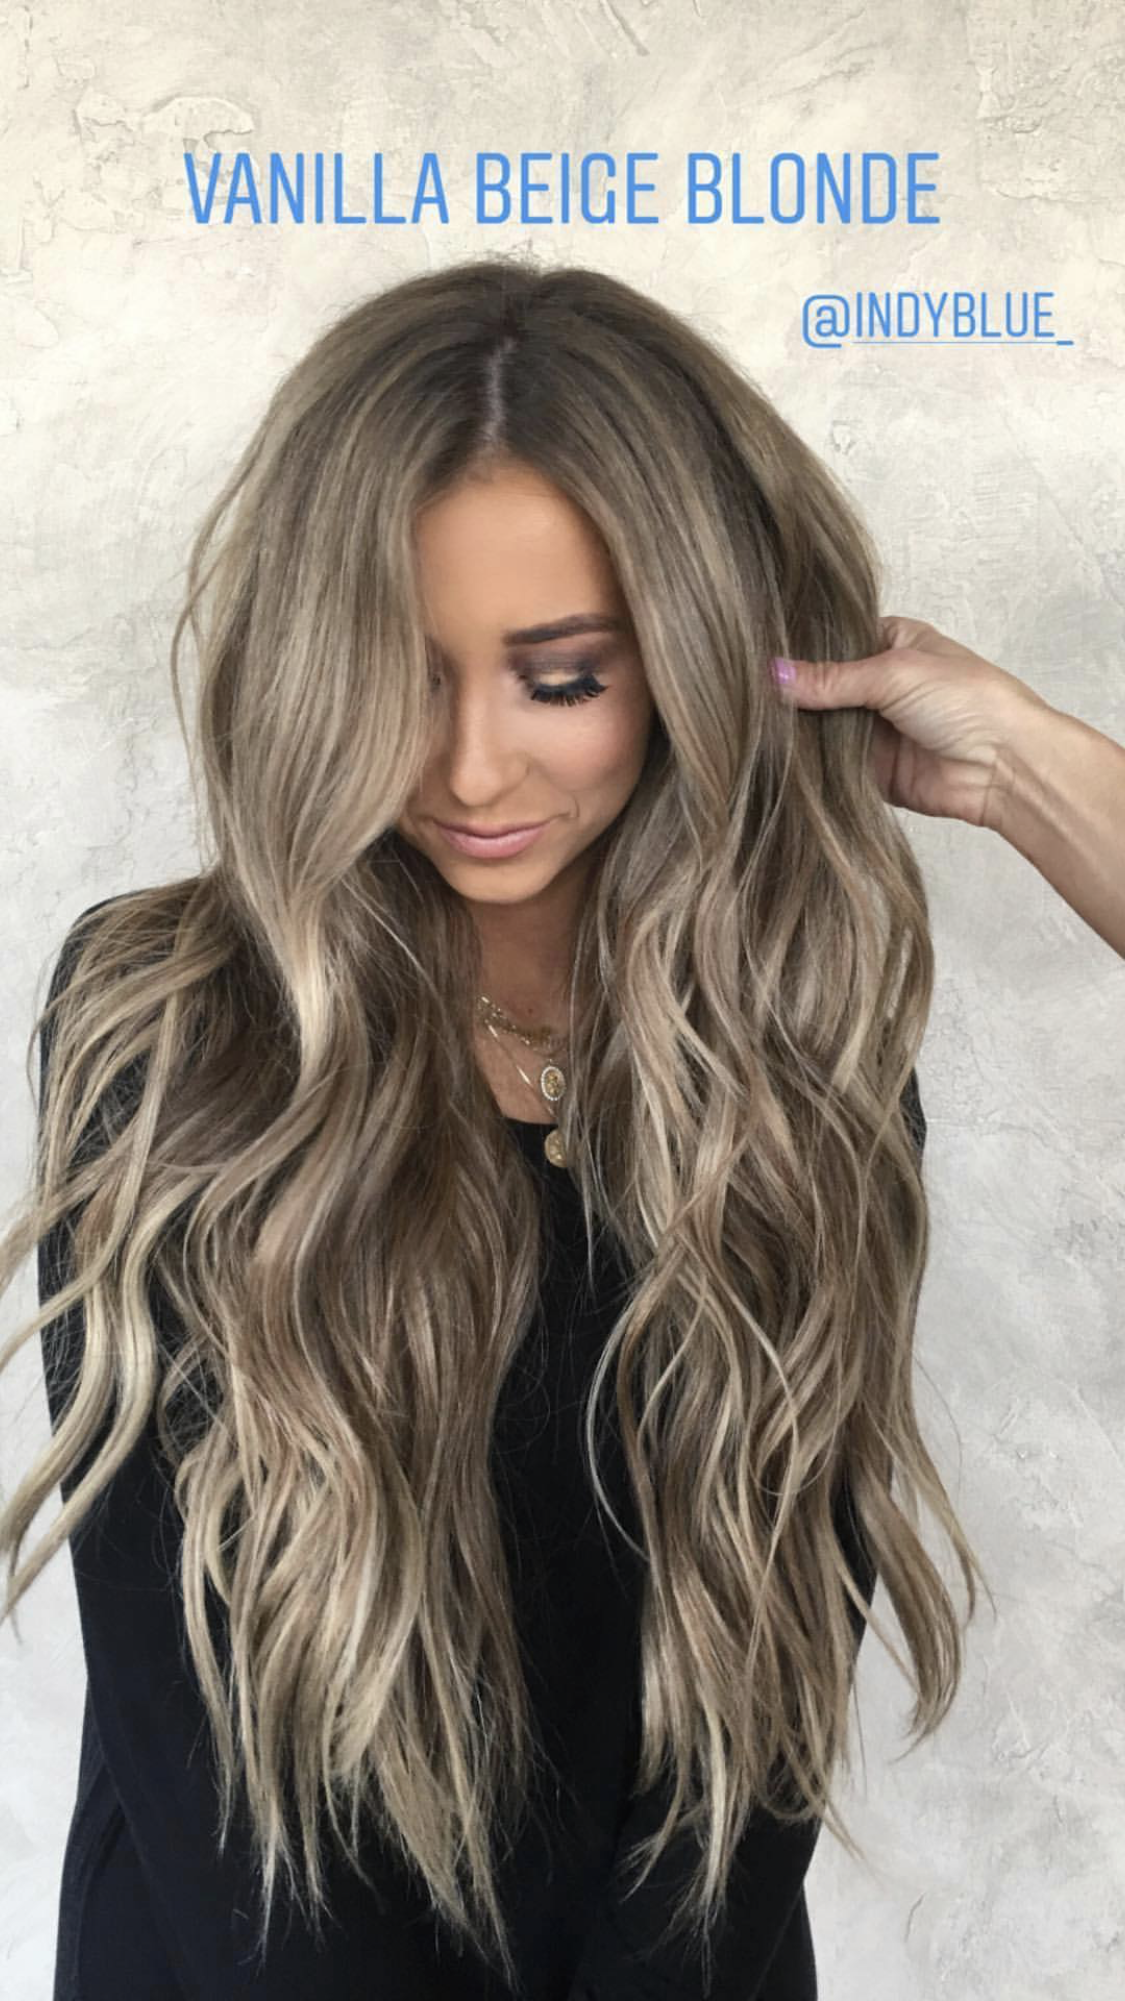 Indy Blue Vanilla Beige Blonde Hair Color Hairstyles Beachy Waves Indyblue Hairby Chrissy Beige Blonde Hair Hair Styles Beige Hair